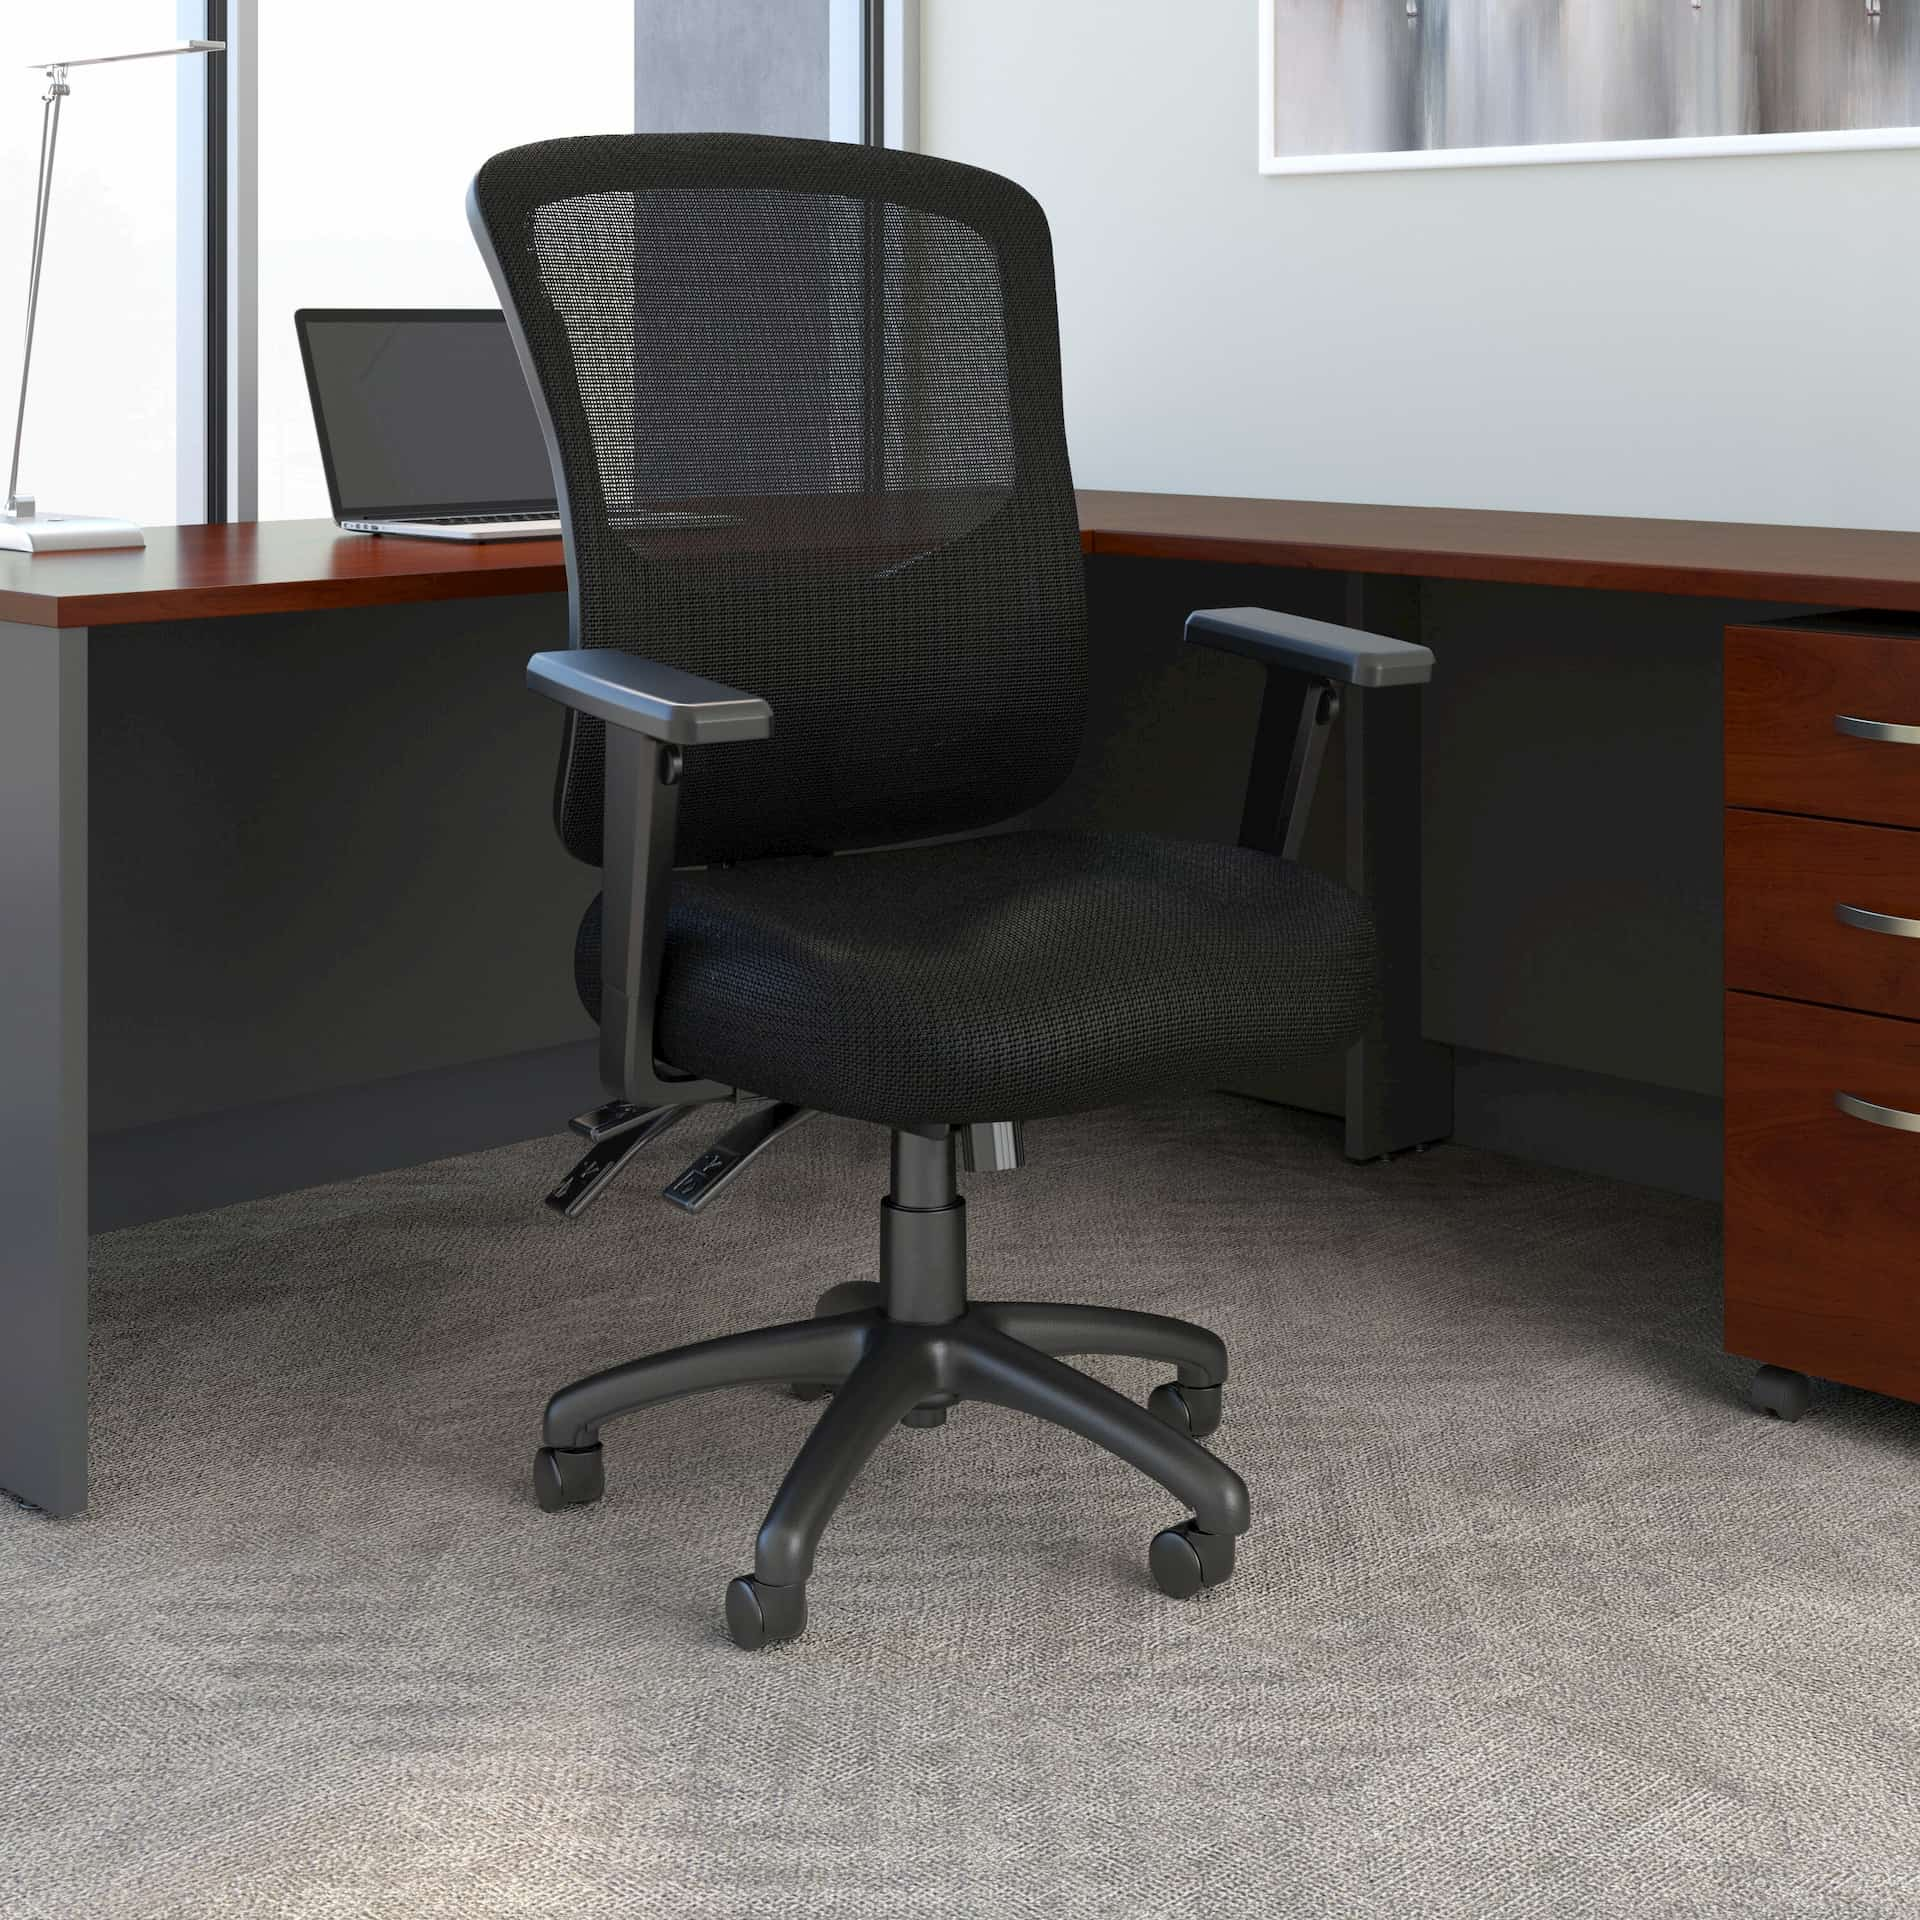 Bush Business Furniture office chair for work from home ergonomics